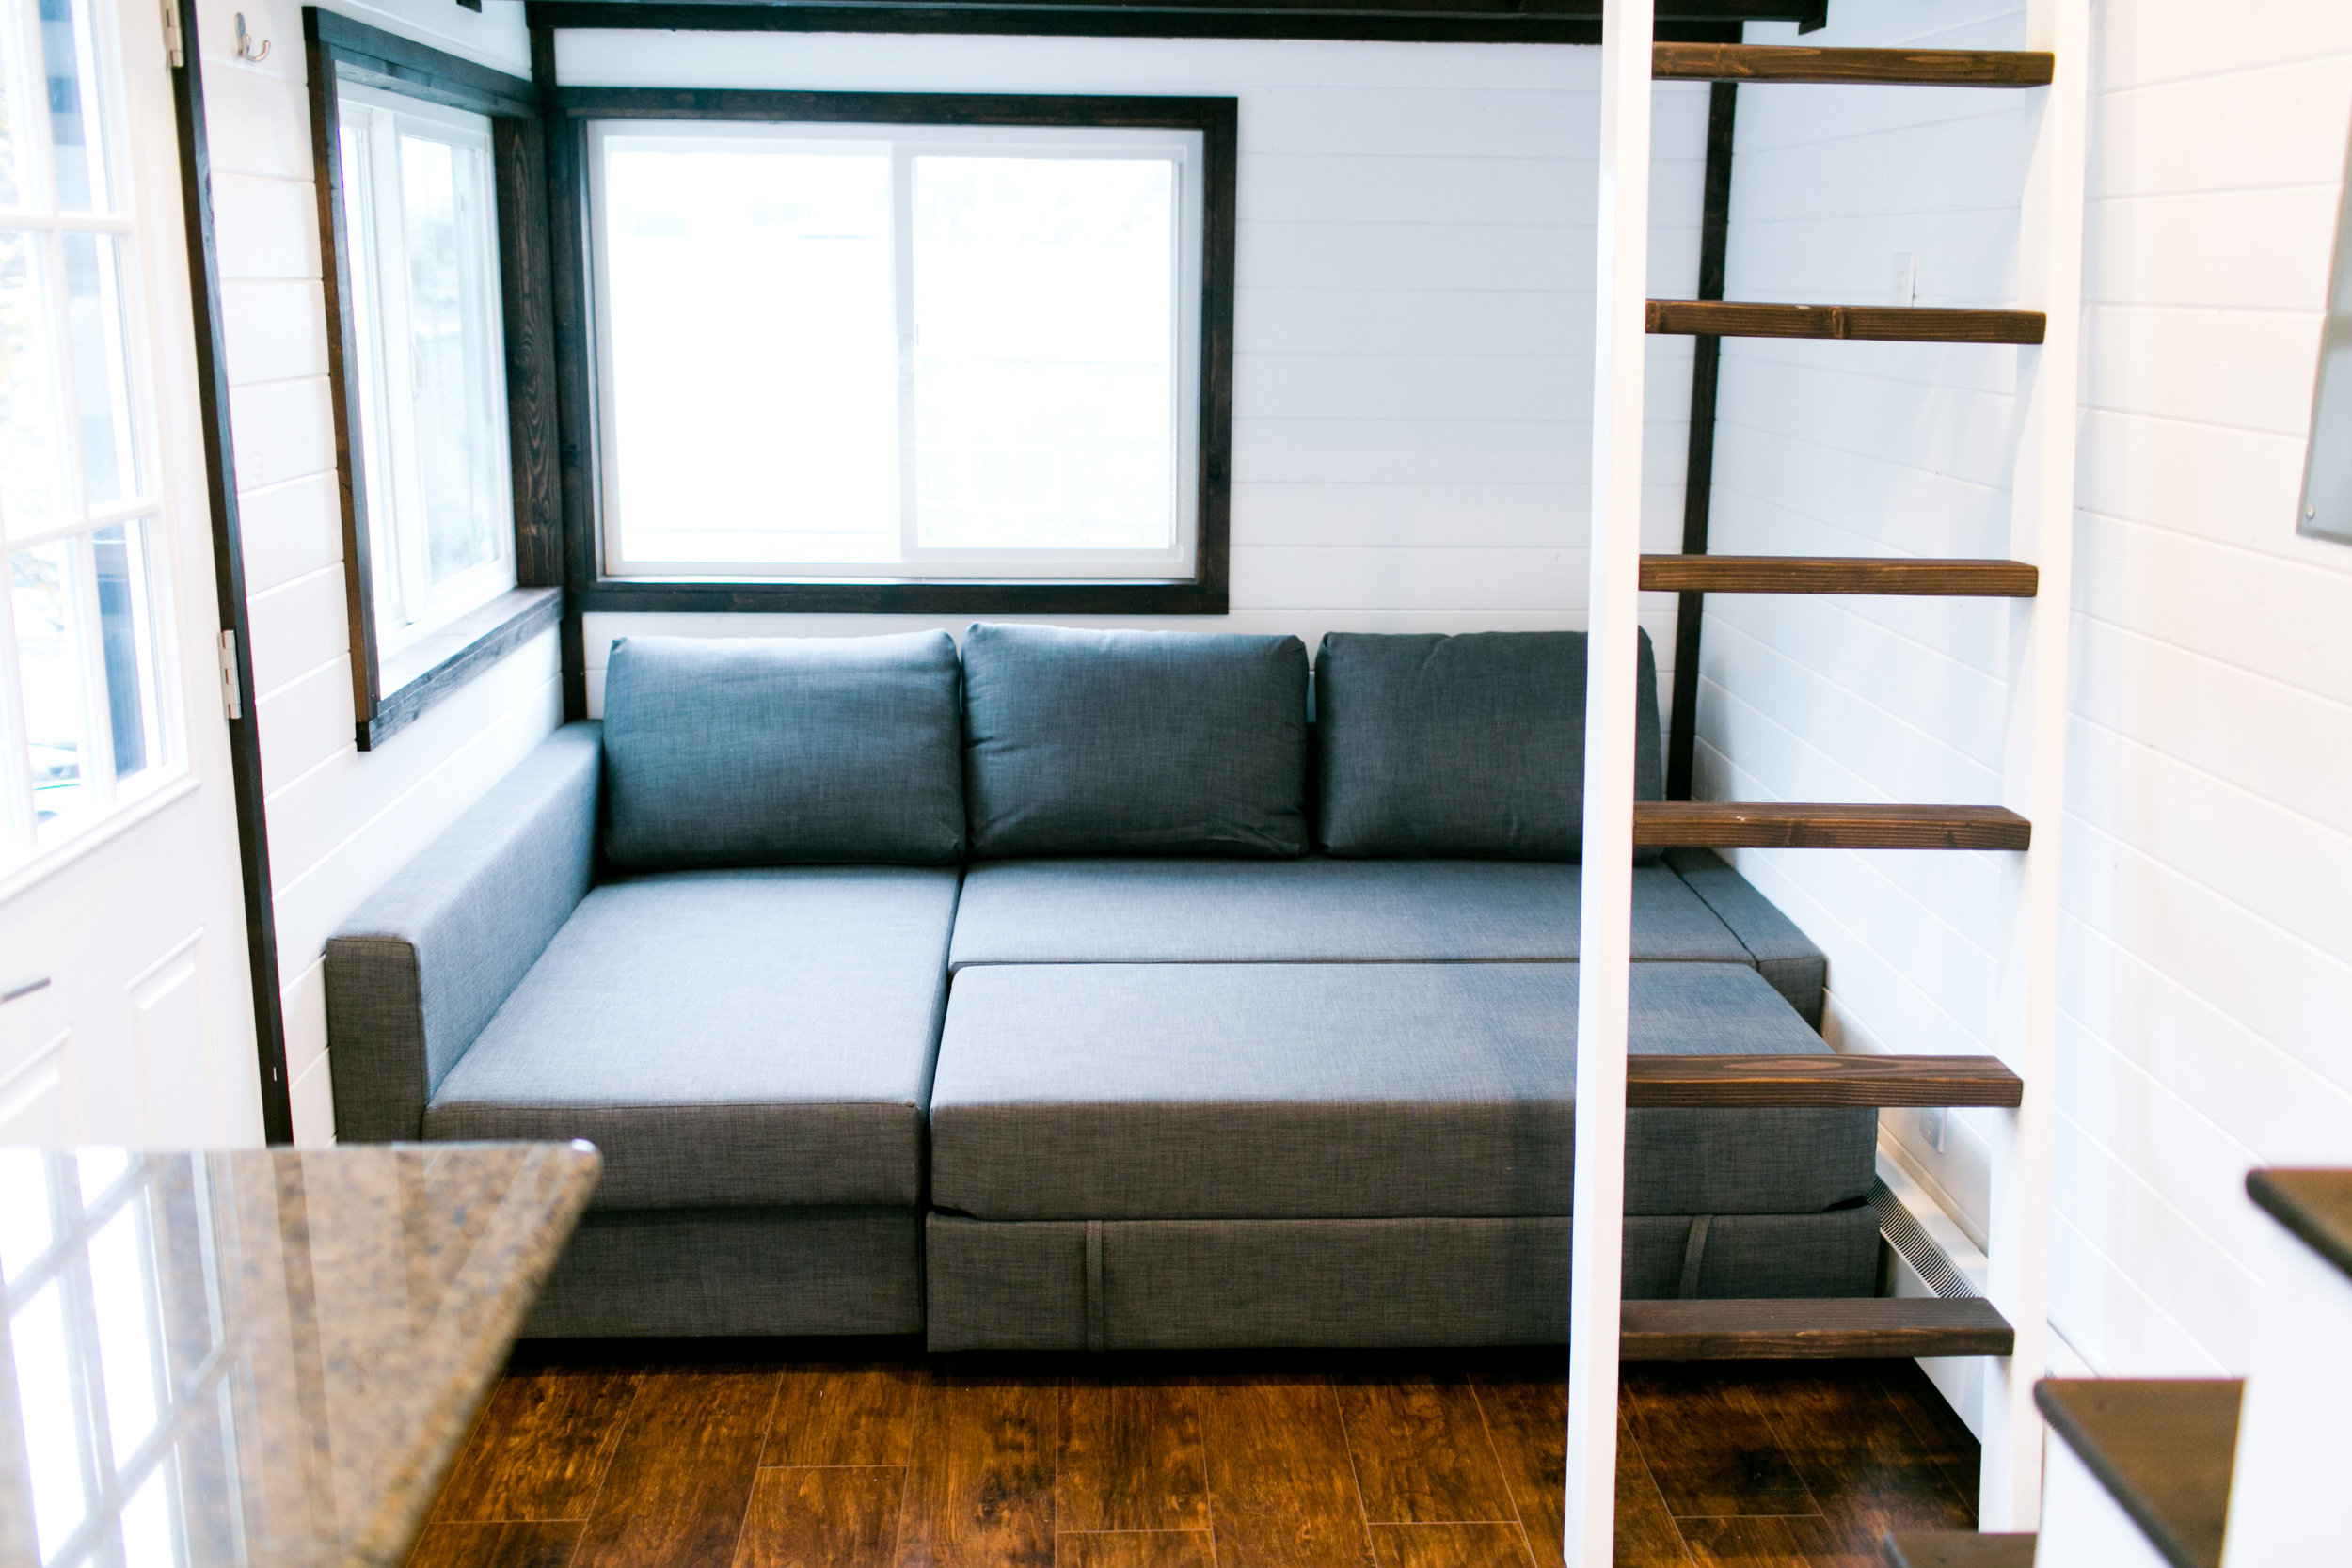 Couch converts into queen size bed